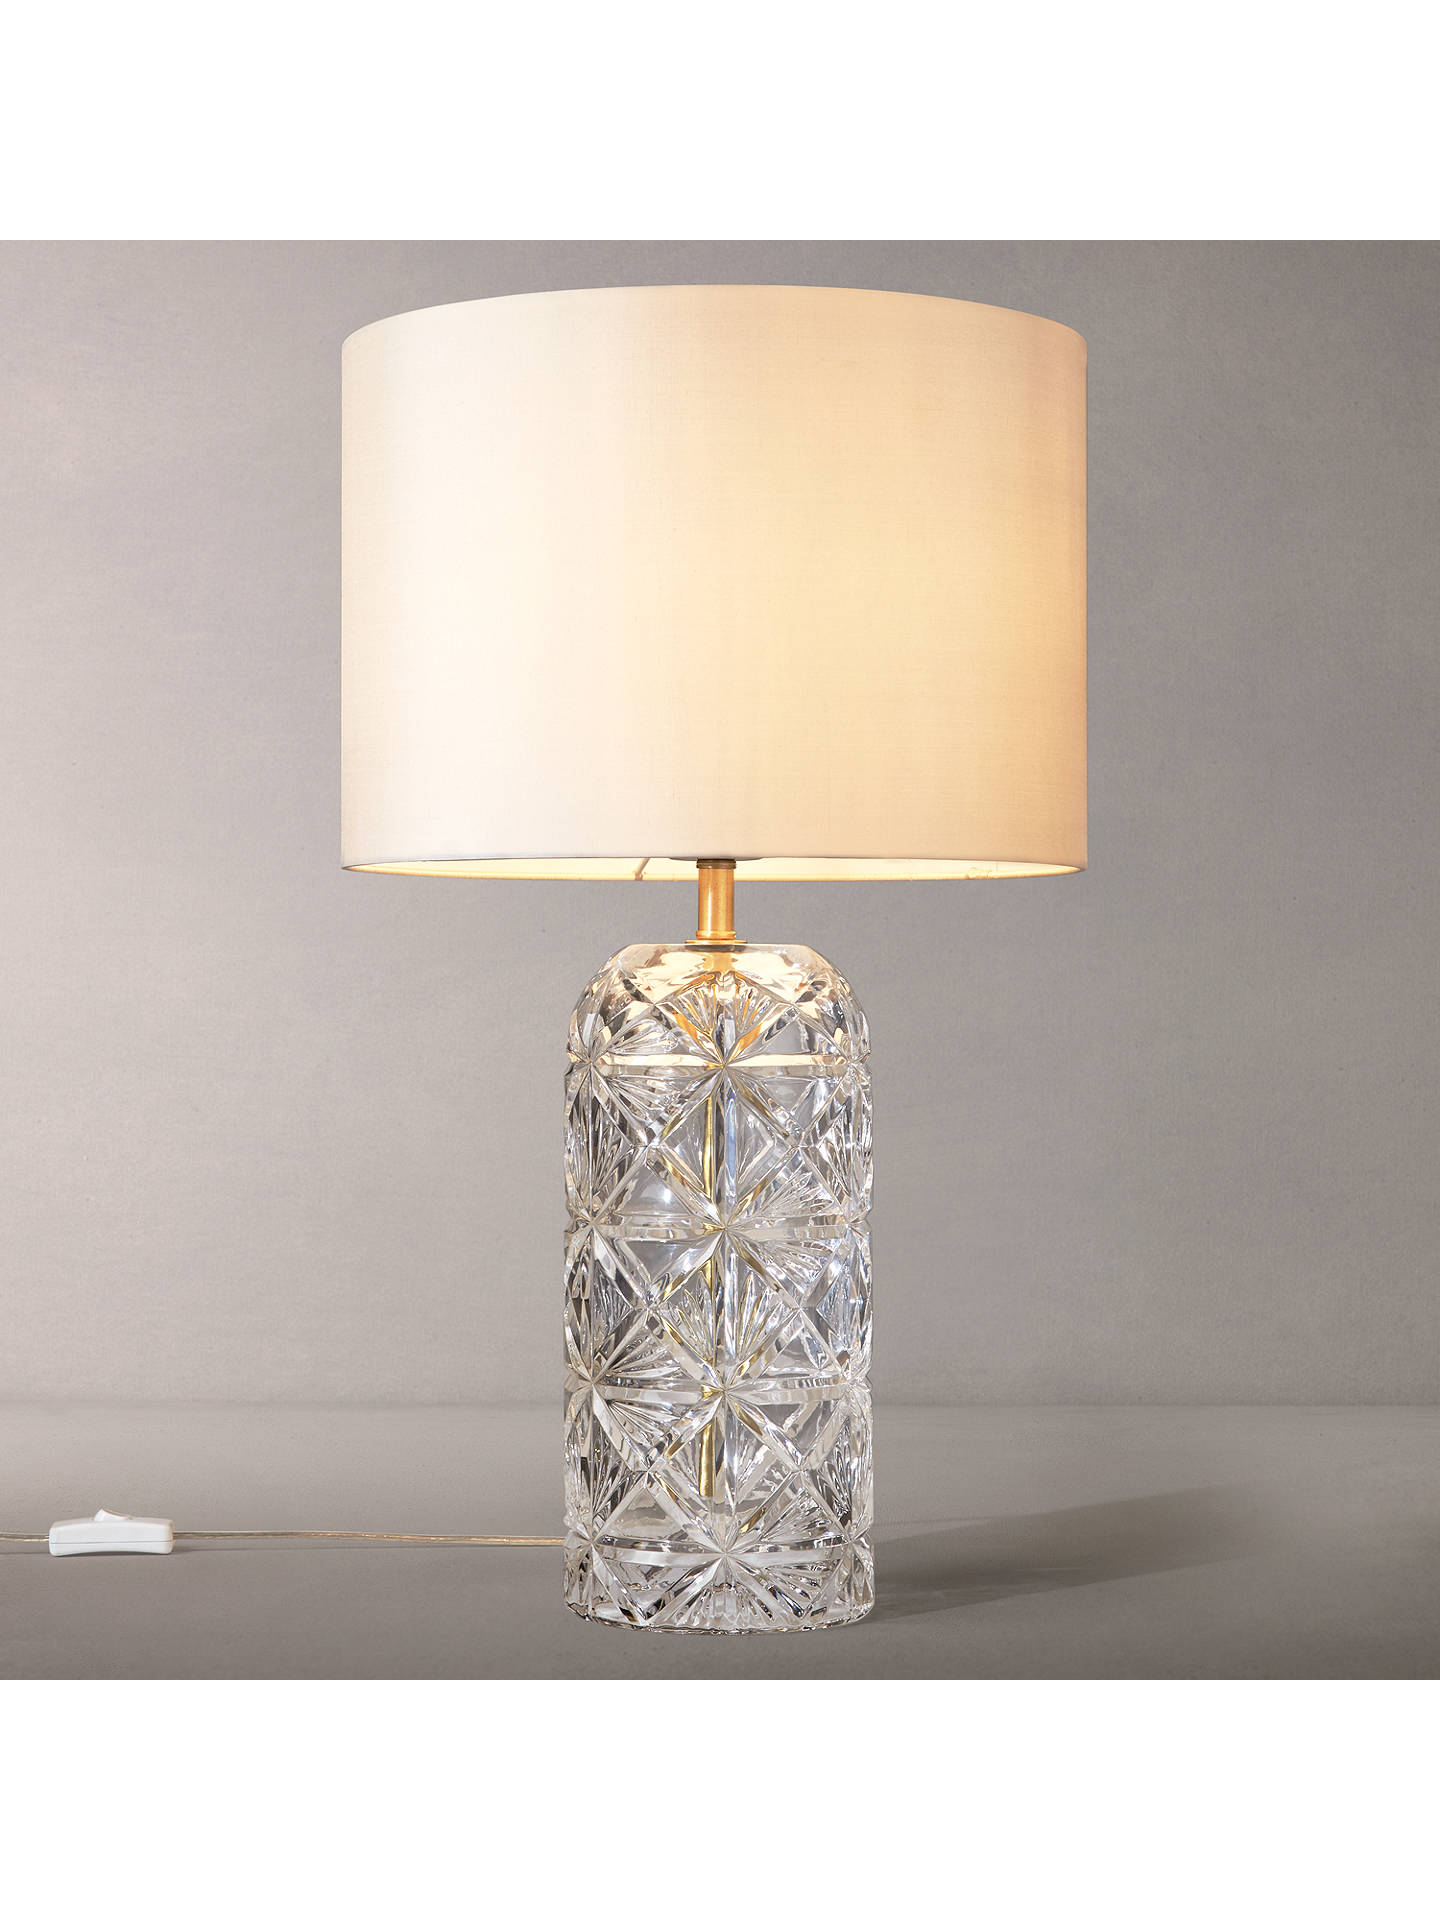 Shop Glass Table Lamps from John Lewis